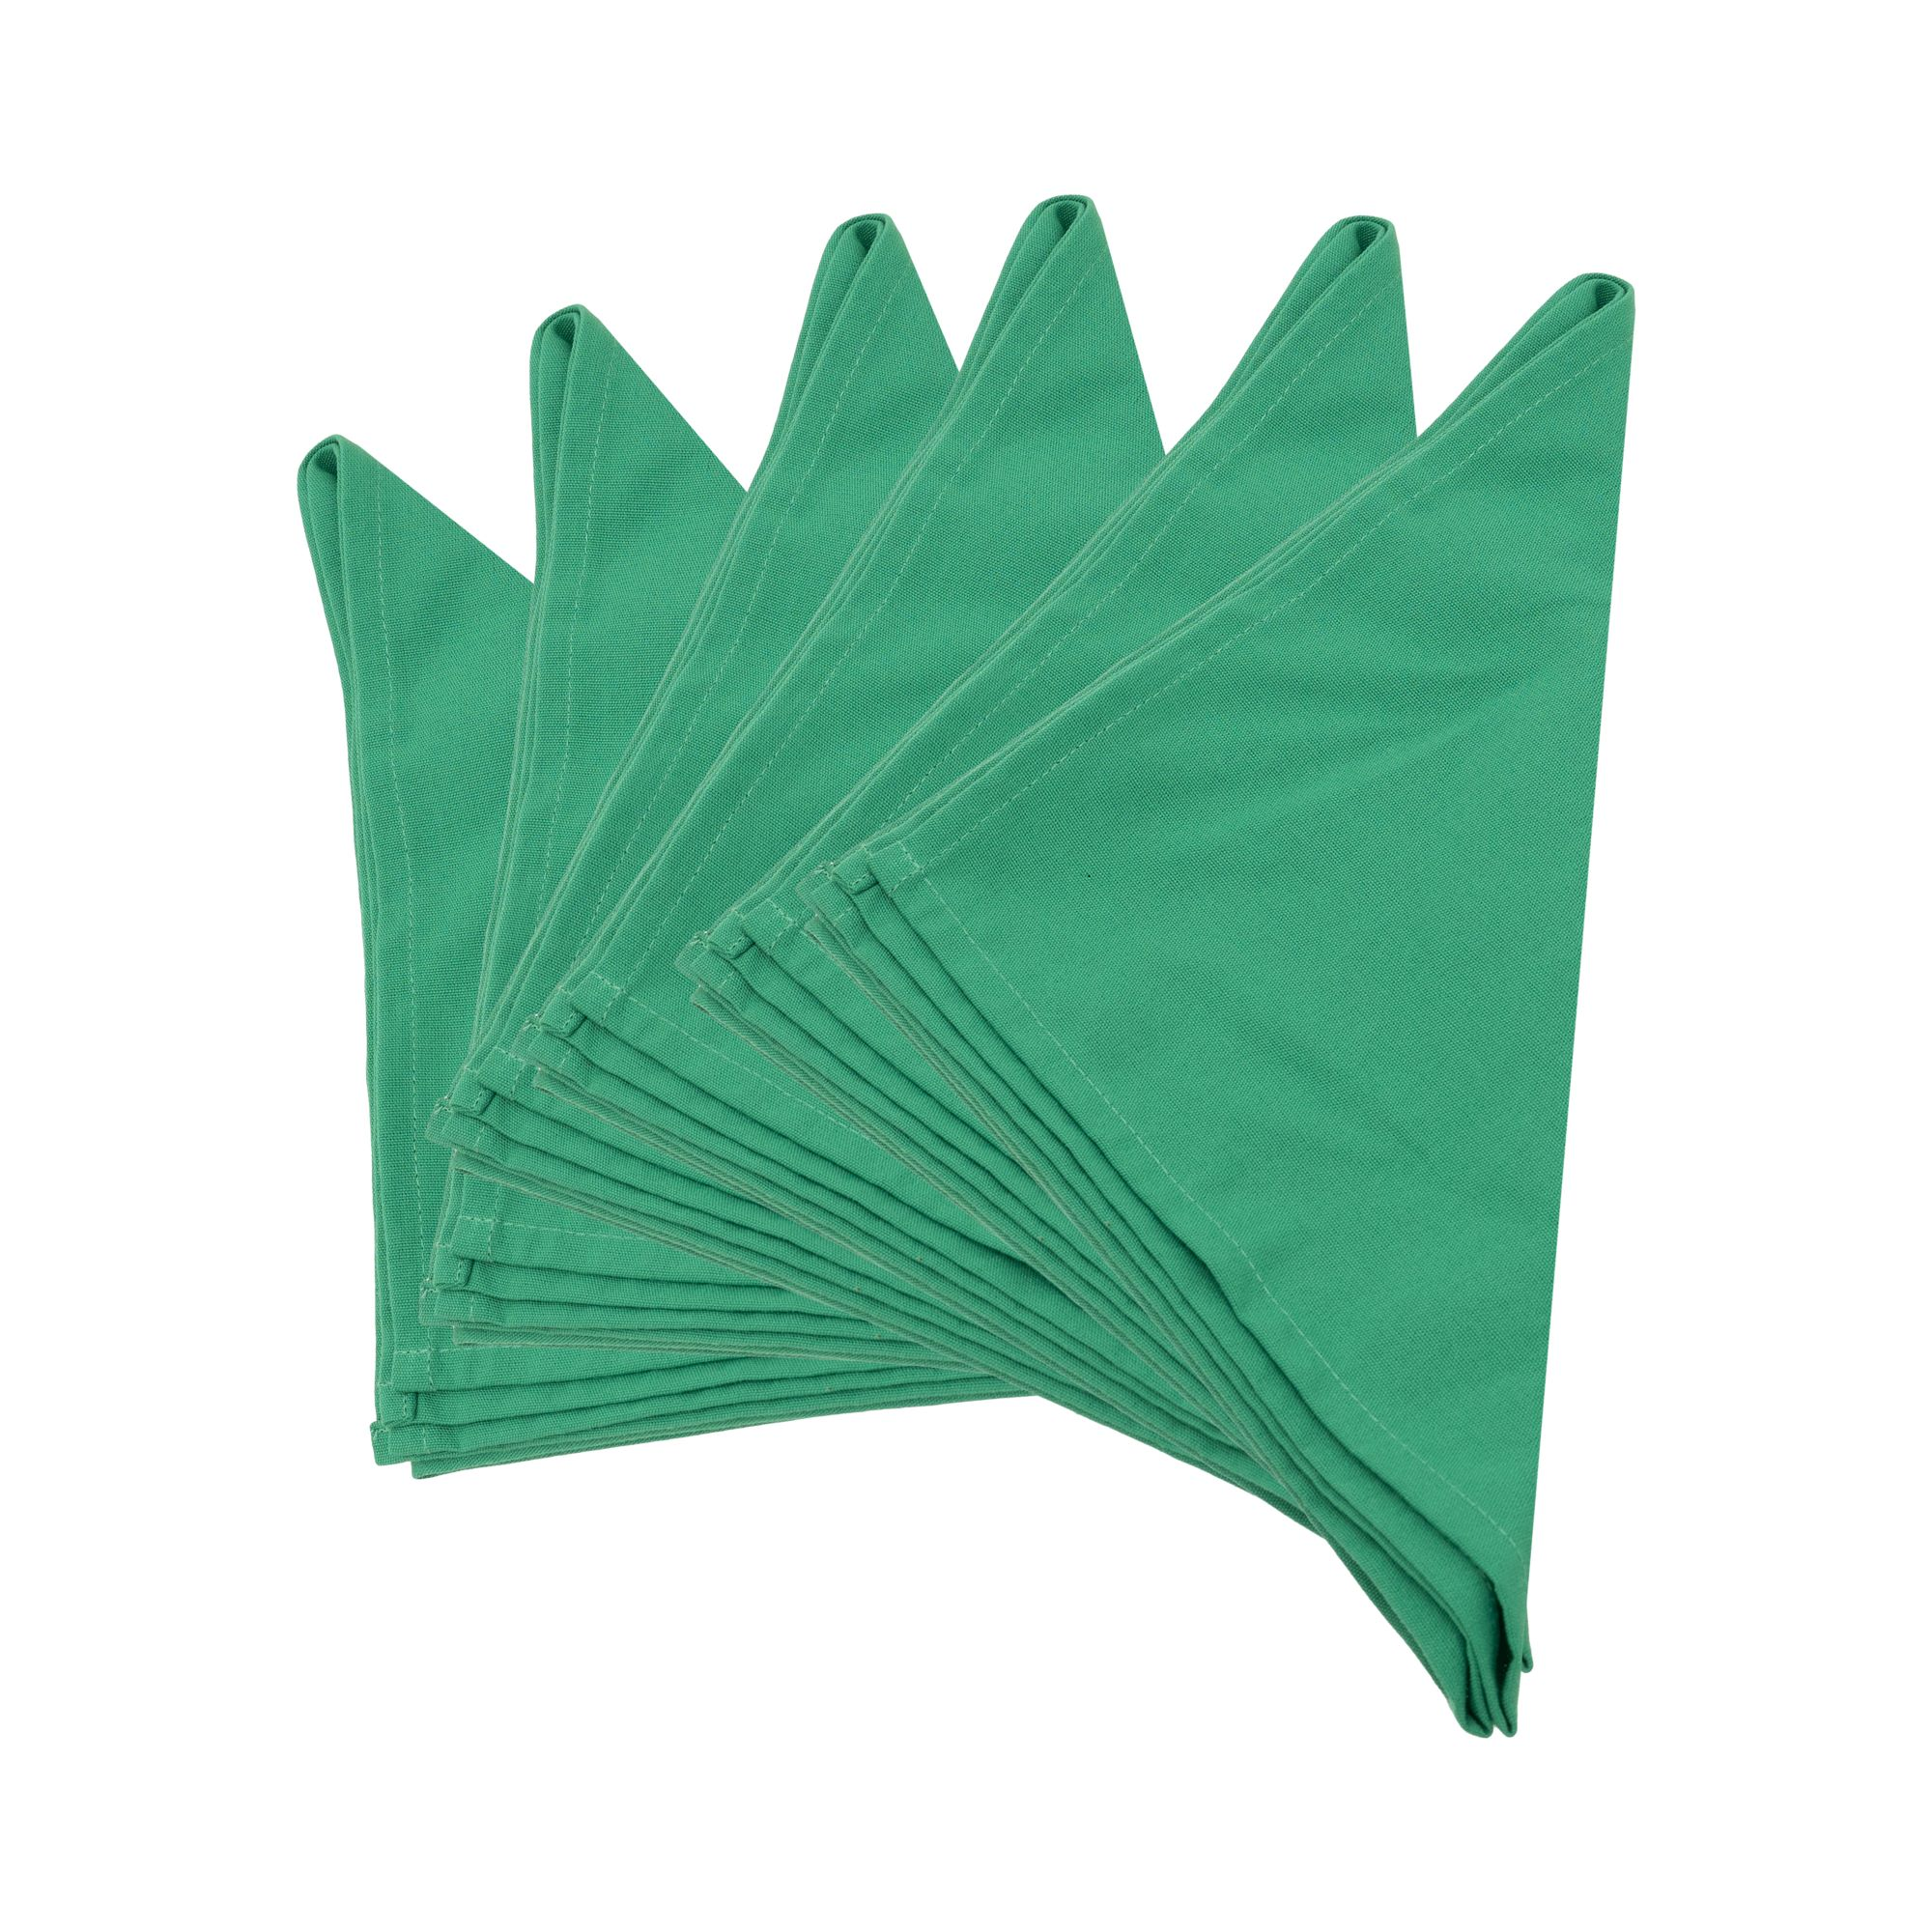 Plain UK Emerald Green Thick Spun Polyester Table Napkins/Fabric Serviette 51x51cm.Pack of 2,4 or 6(Emerald Green)